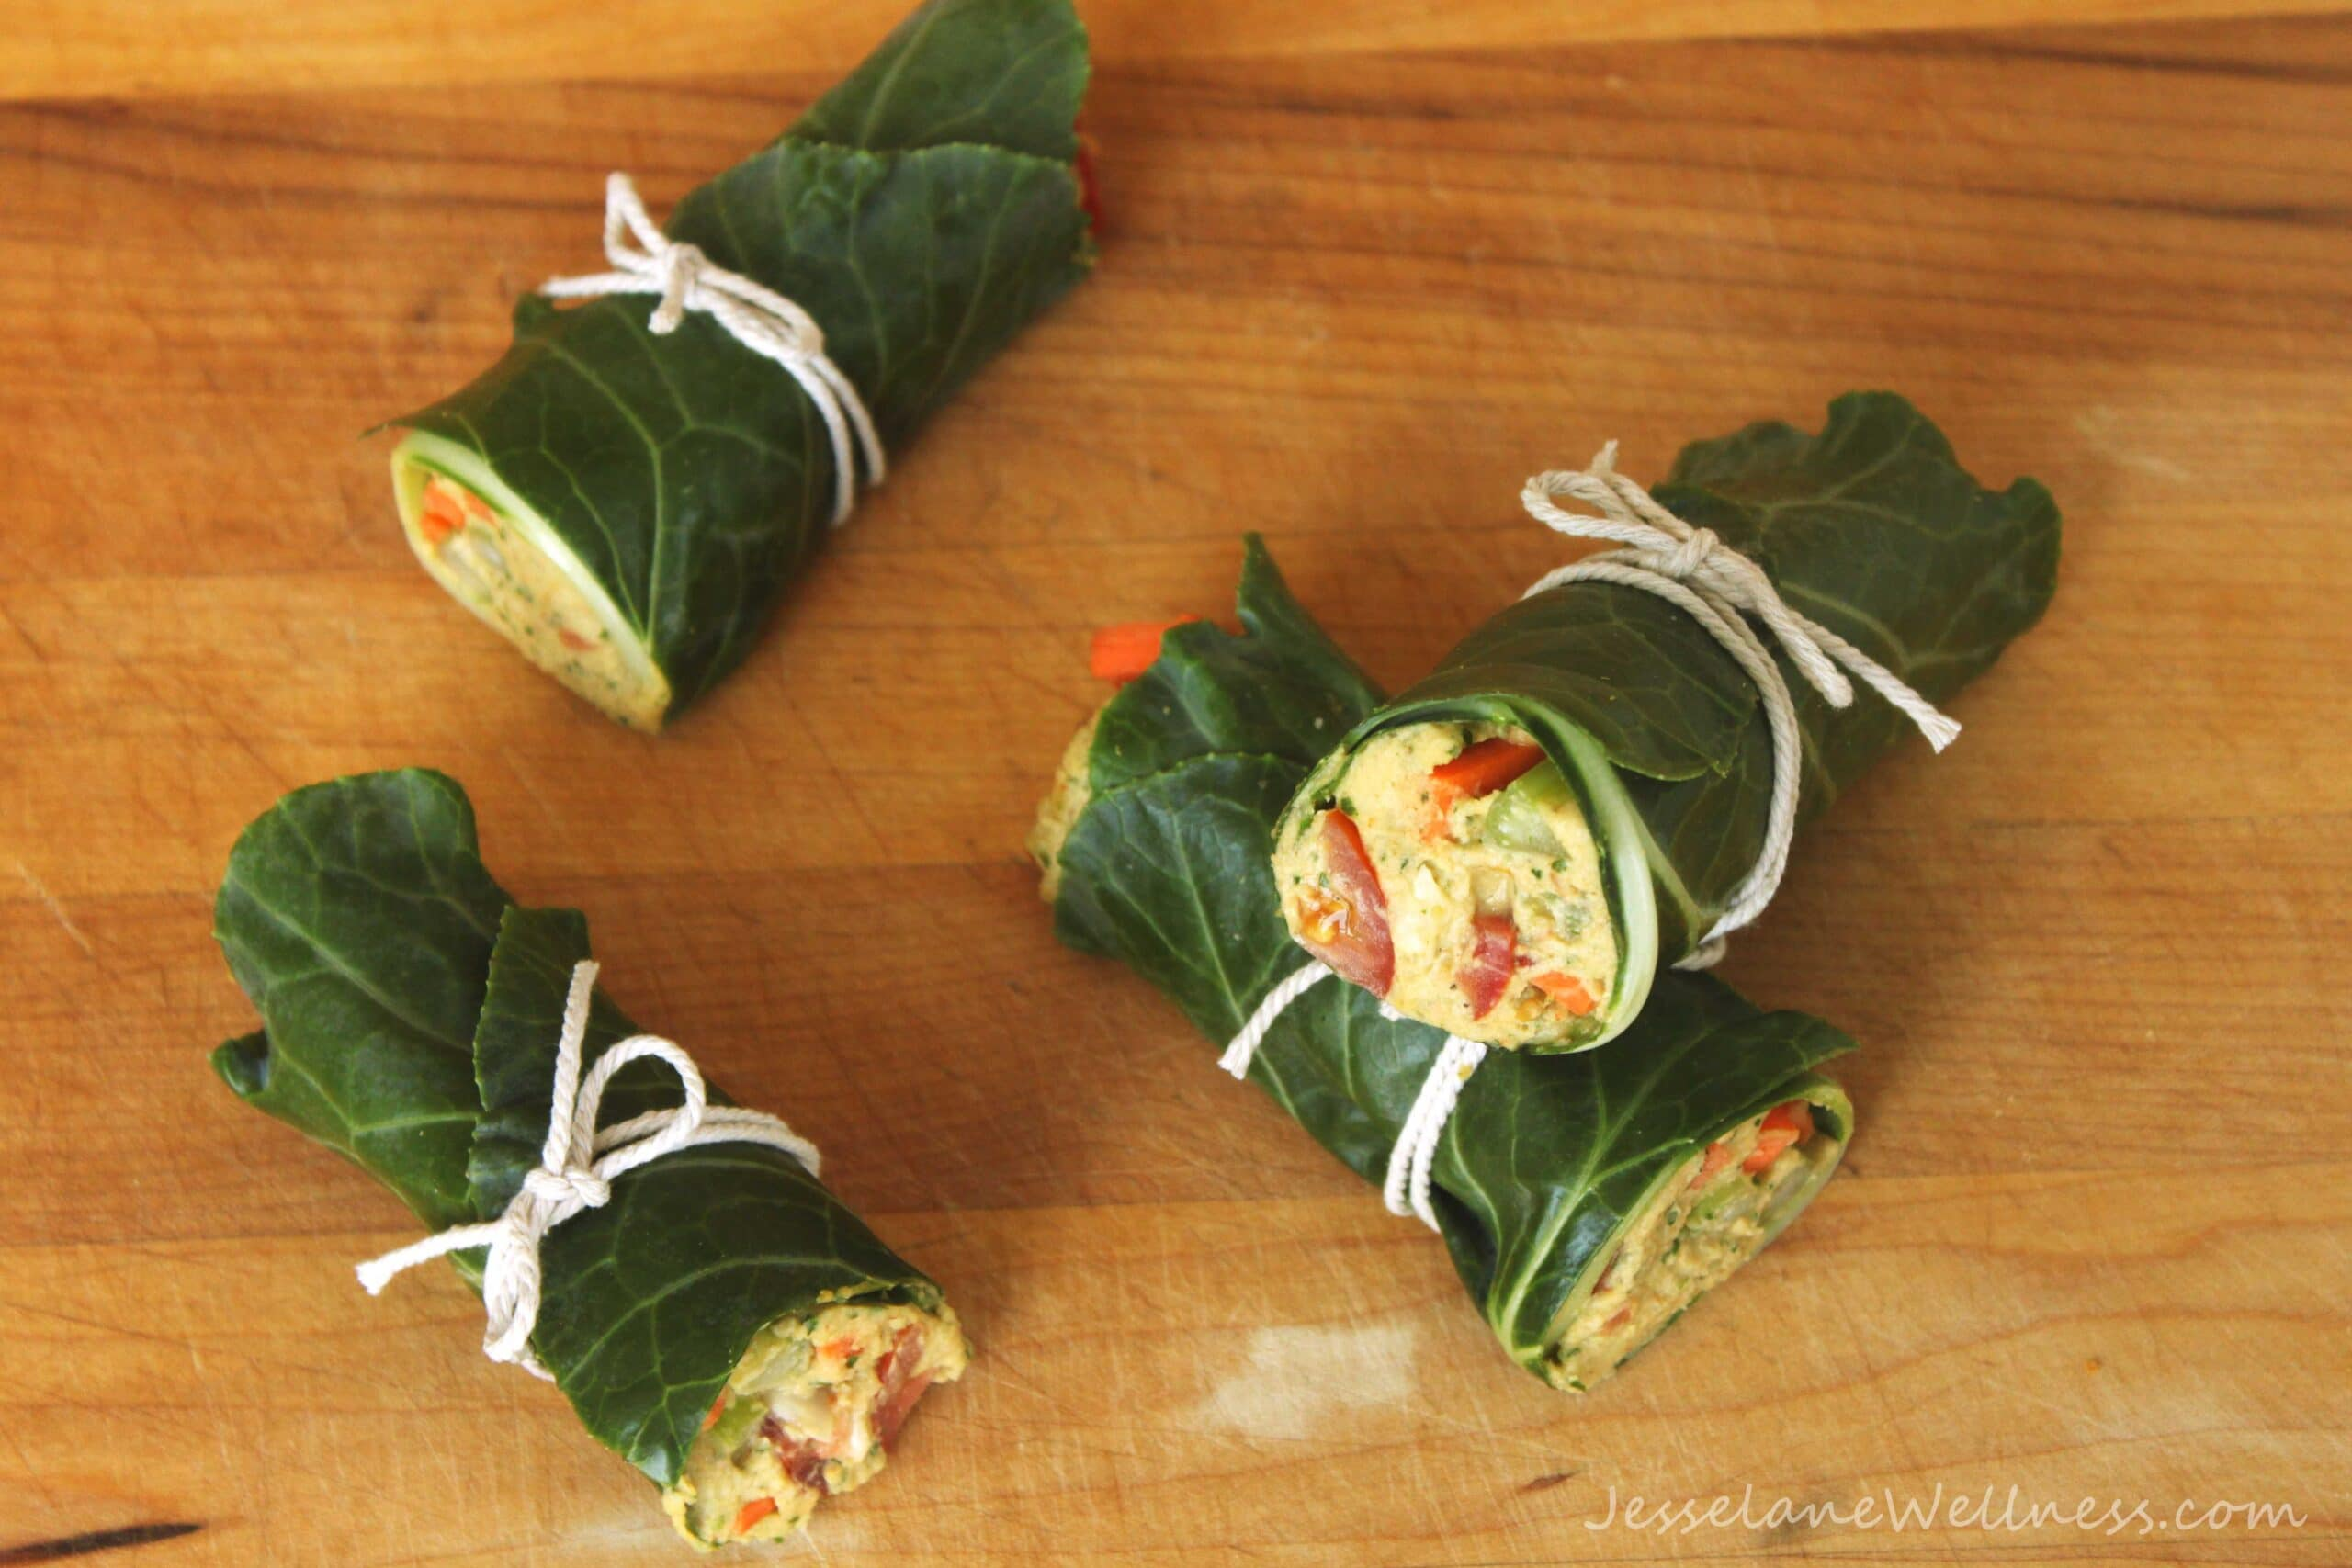 Falafel Hummus Collard Wraps by @jesselwellness #vegan #cleaneating